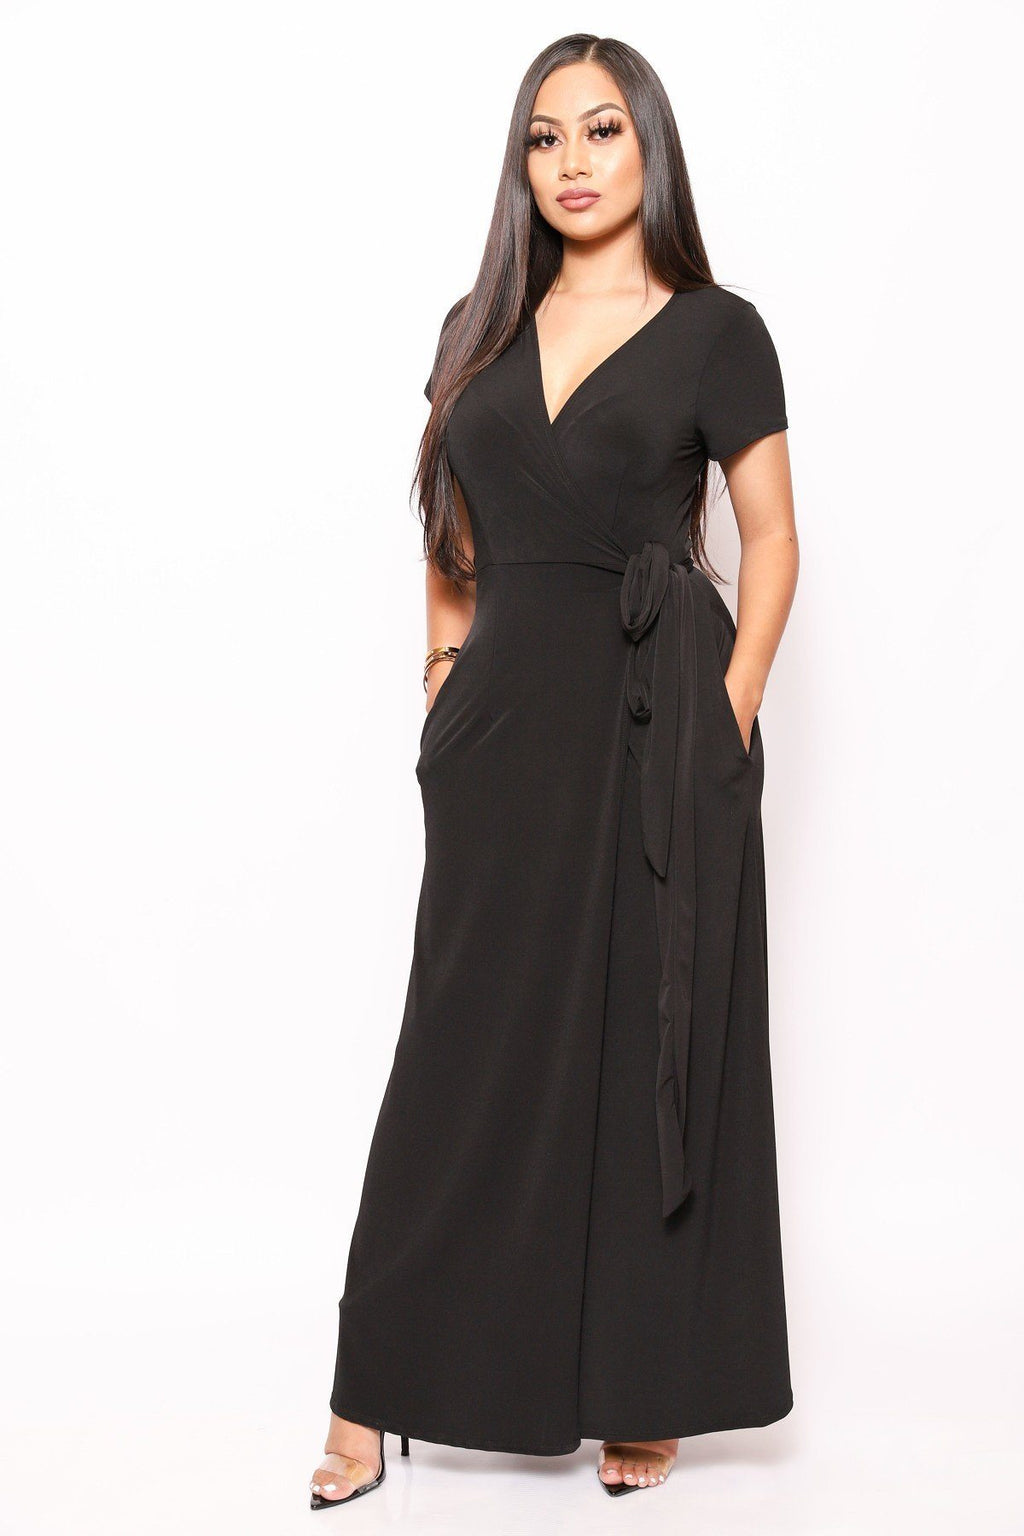 Simple, Sexy, And Chic Floor Length Wrap Dresses - Miranda's Paparazzi Style